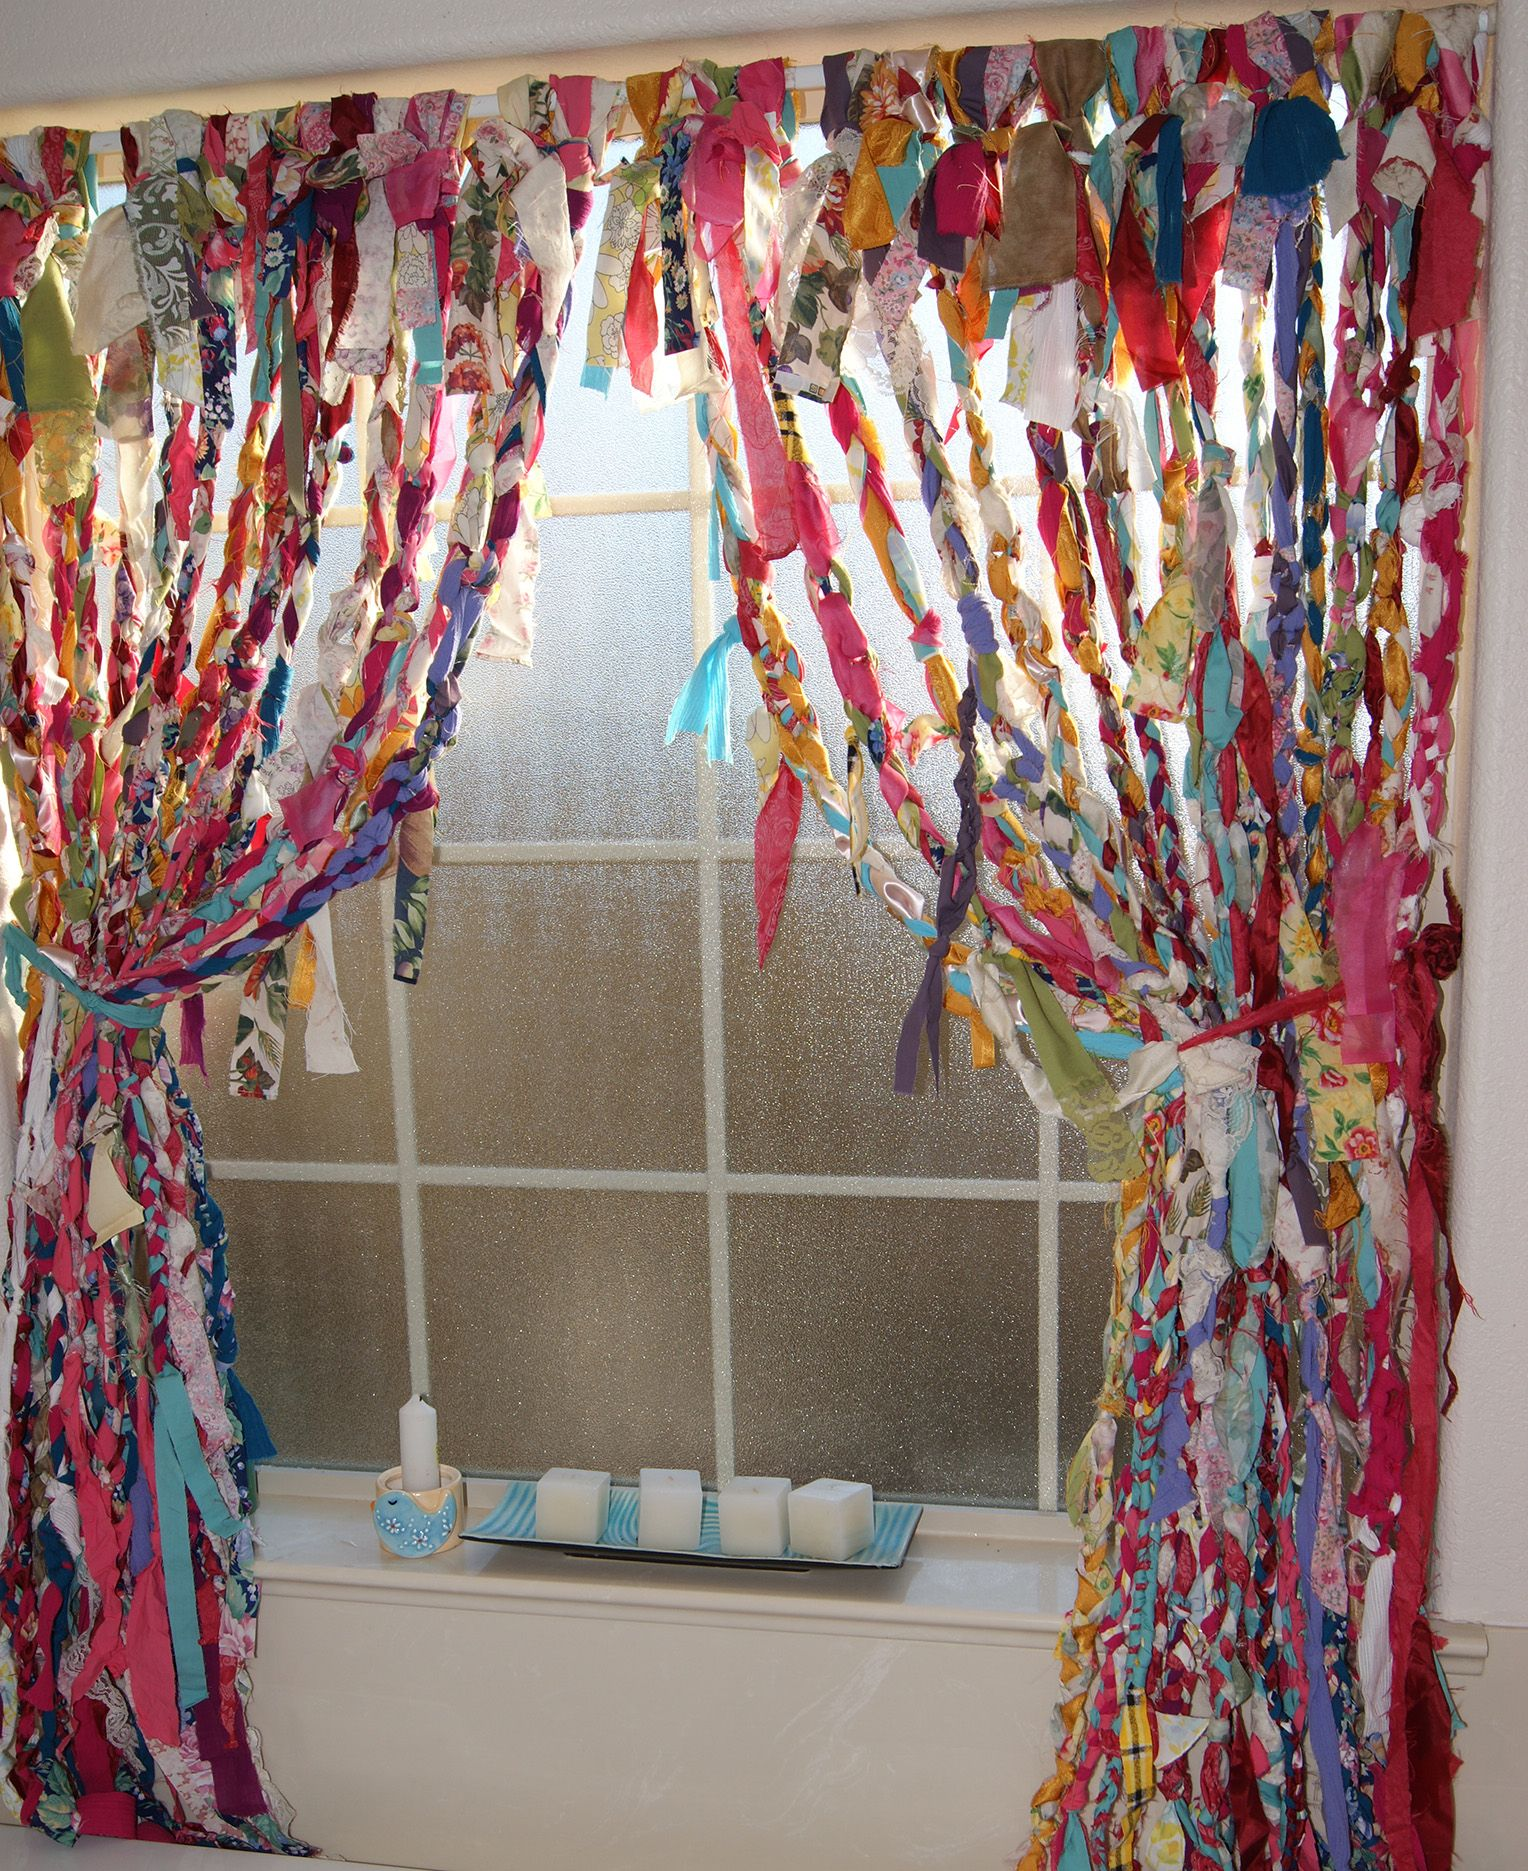 I Braided And Knotted These Boho No-sew Rag Curtains With